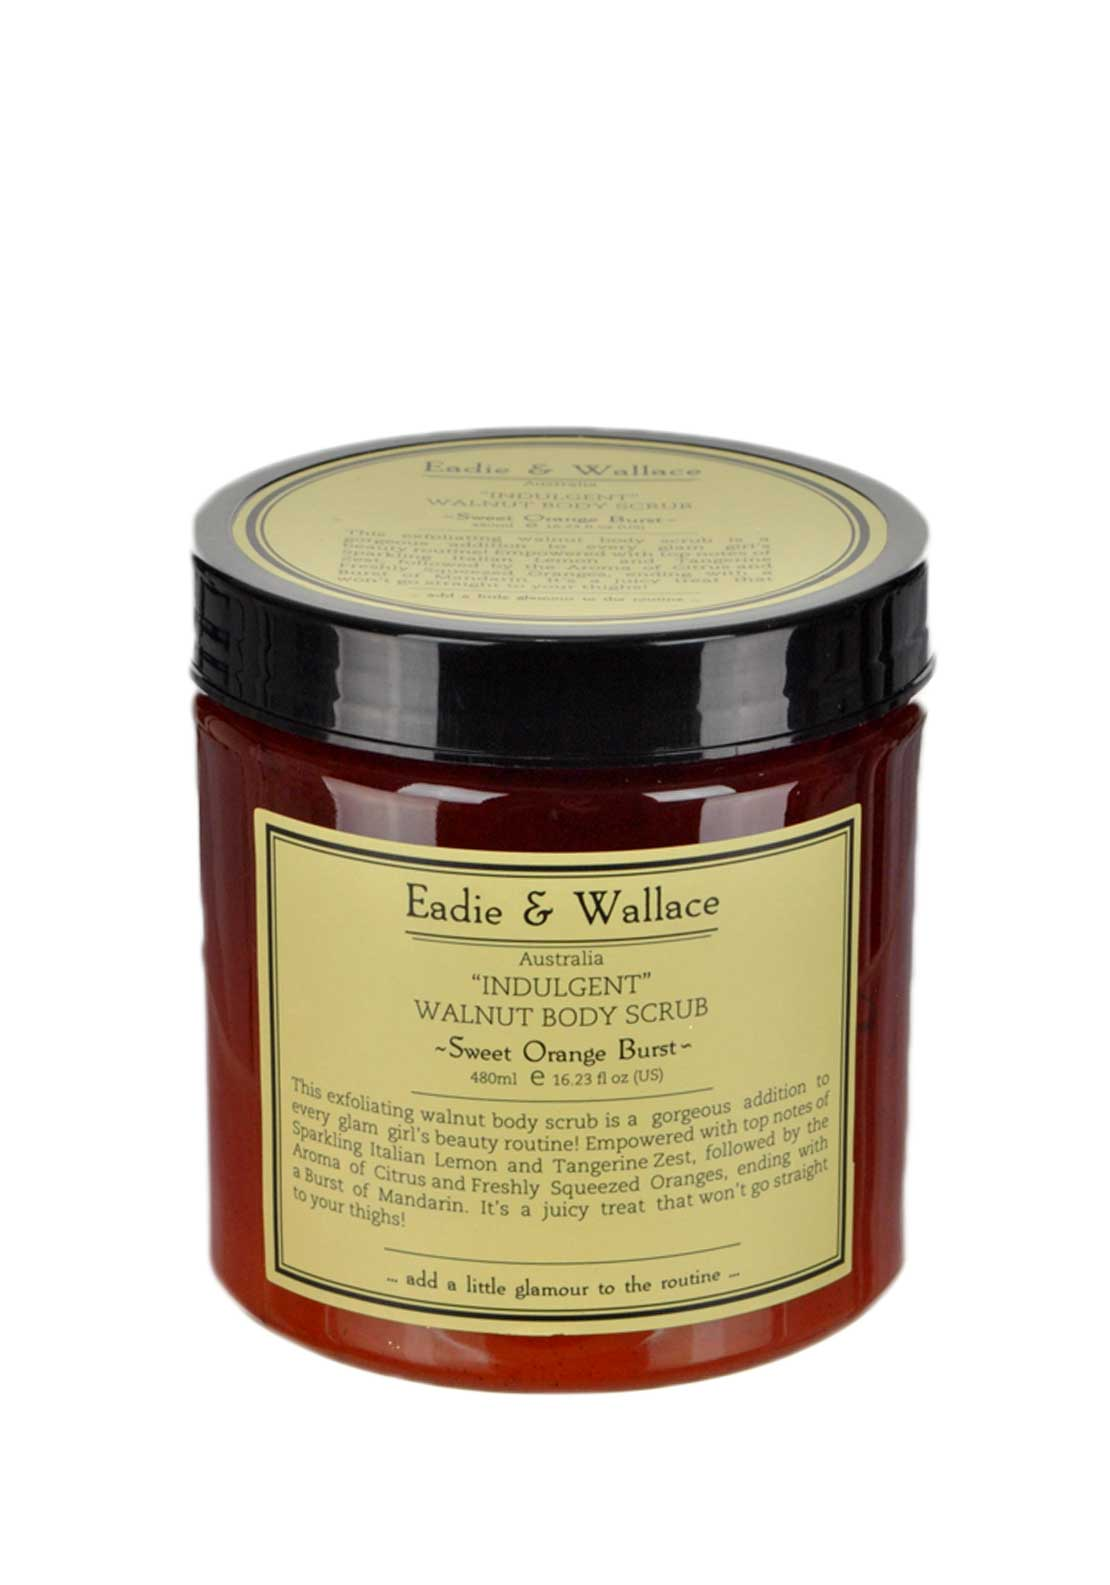 Eadie & Wallace Indulgent Walnut Body Scrub, Sweet Orange Burst